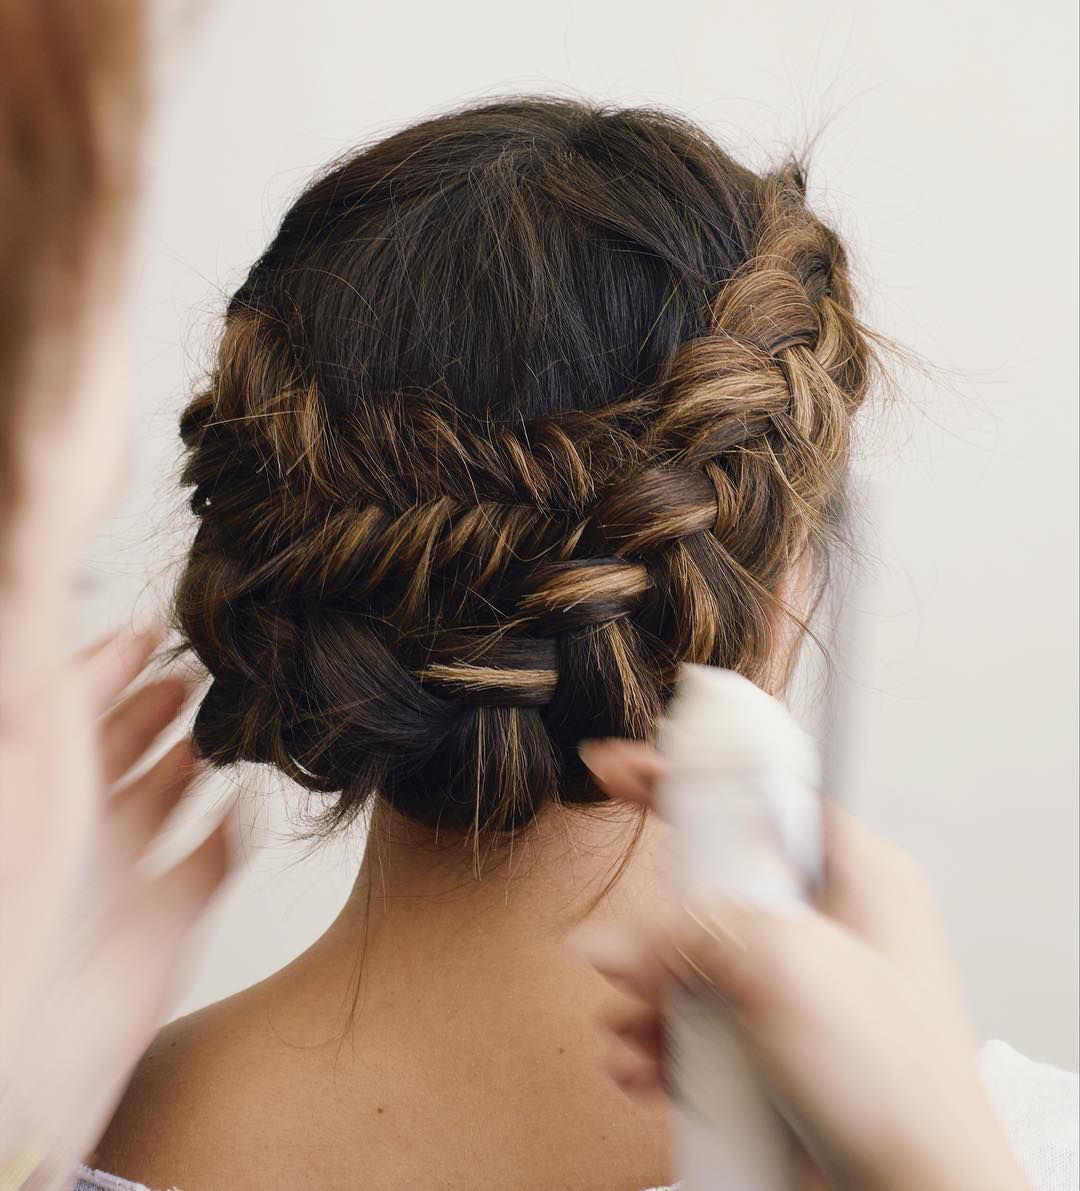 Hairstyle Ideas For Wedding: 50 Braided Wedding Hairstyles We Love